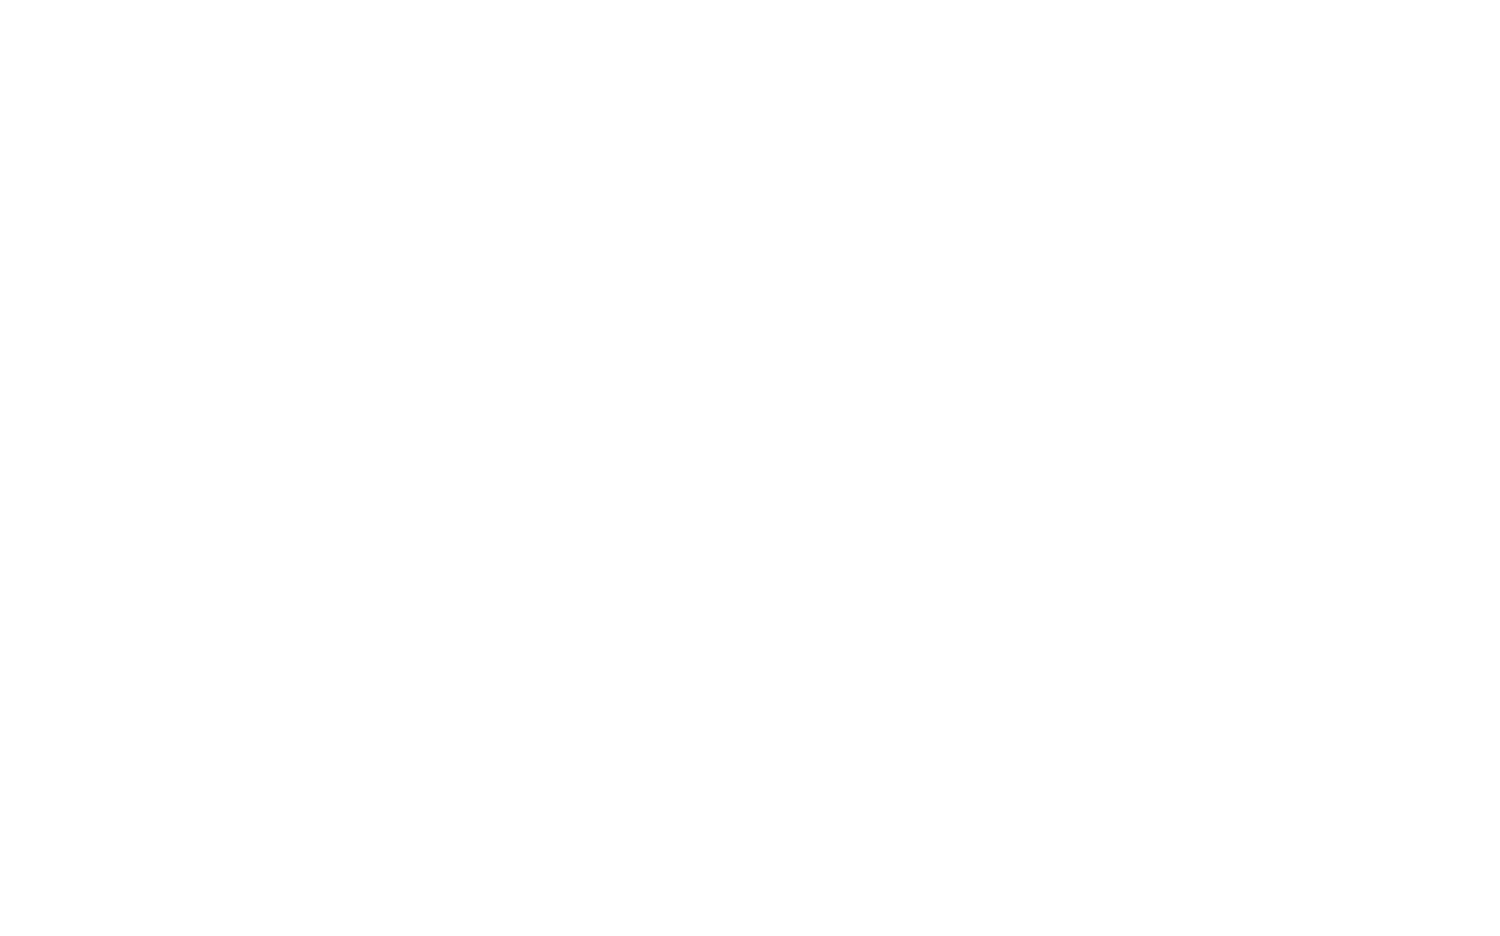 Galloway National Park Association